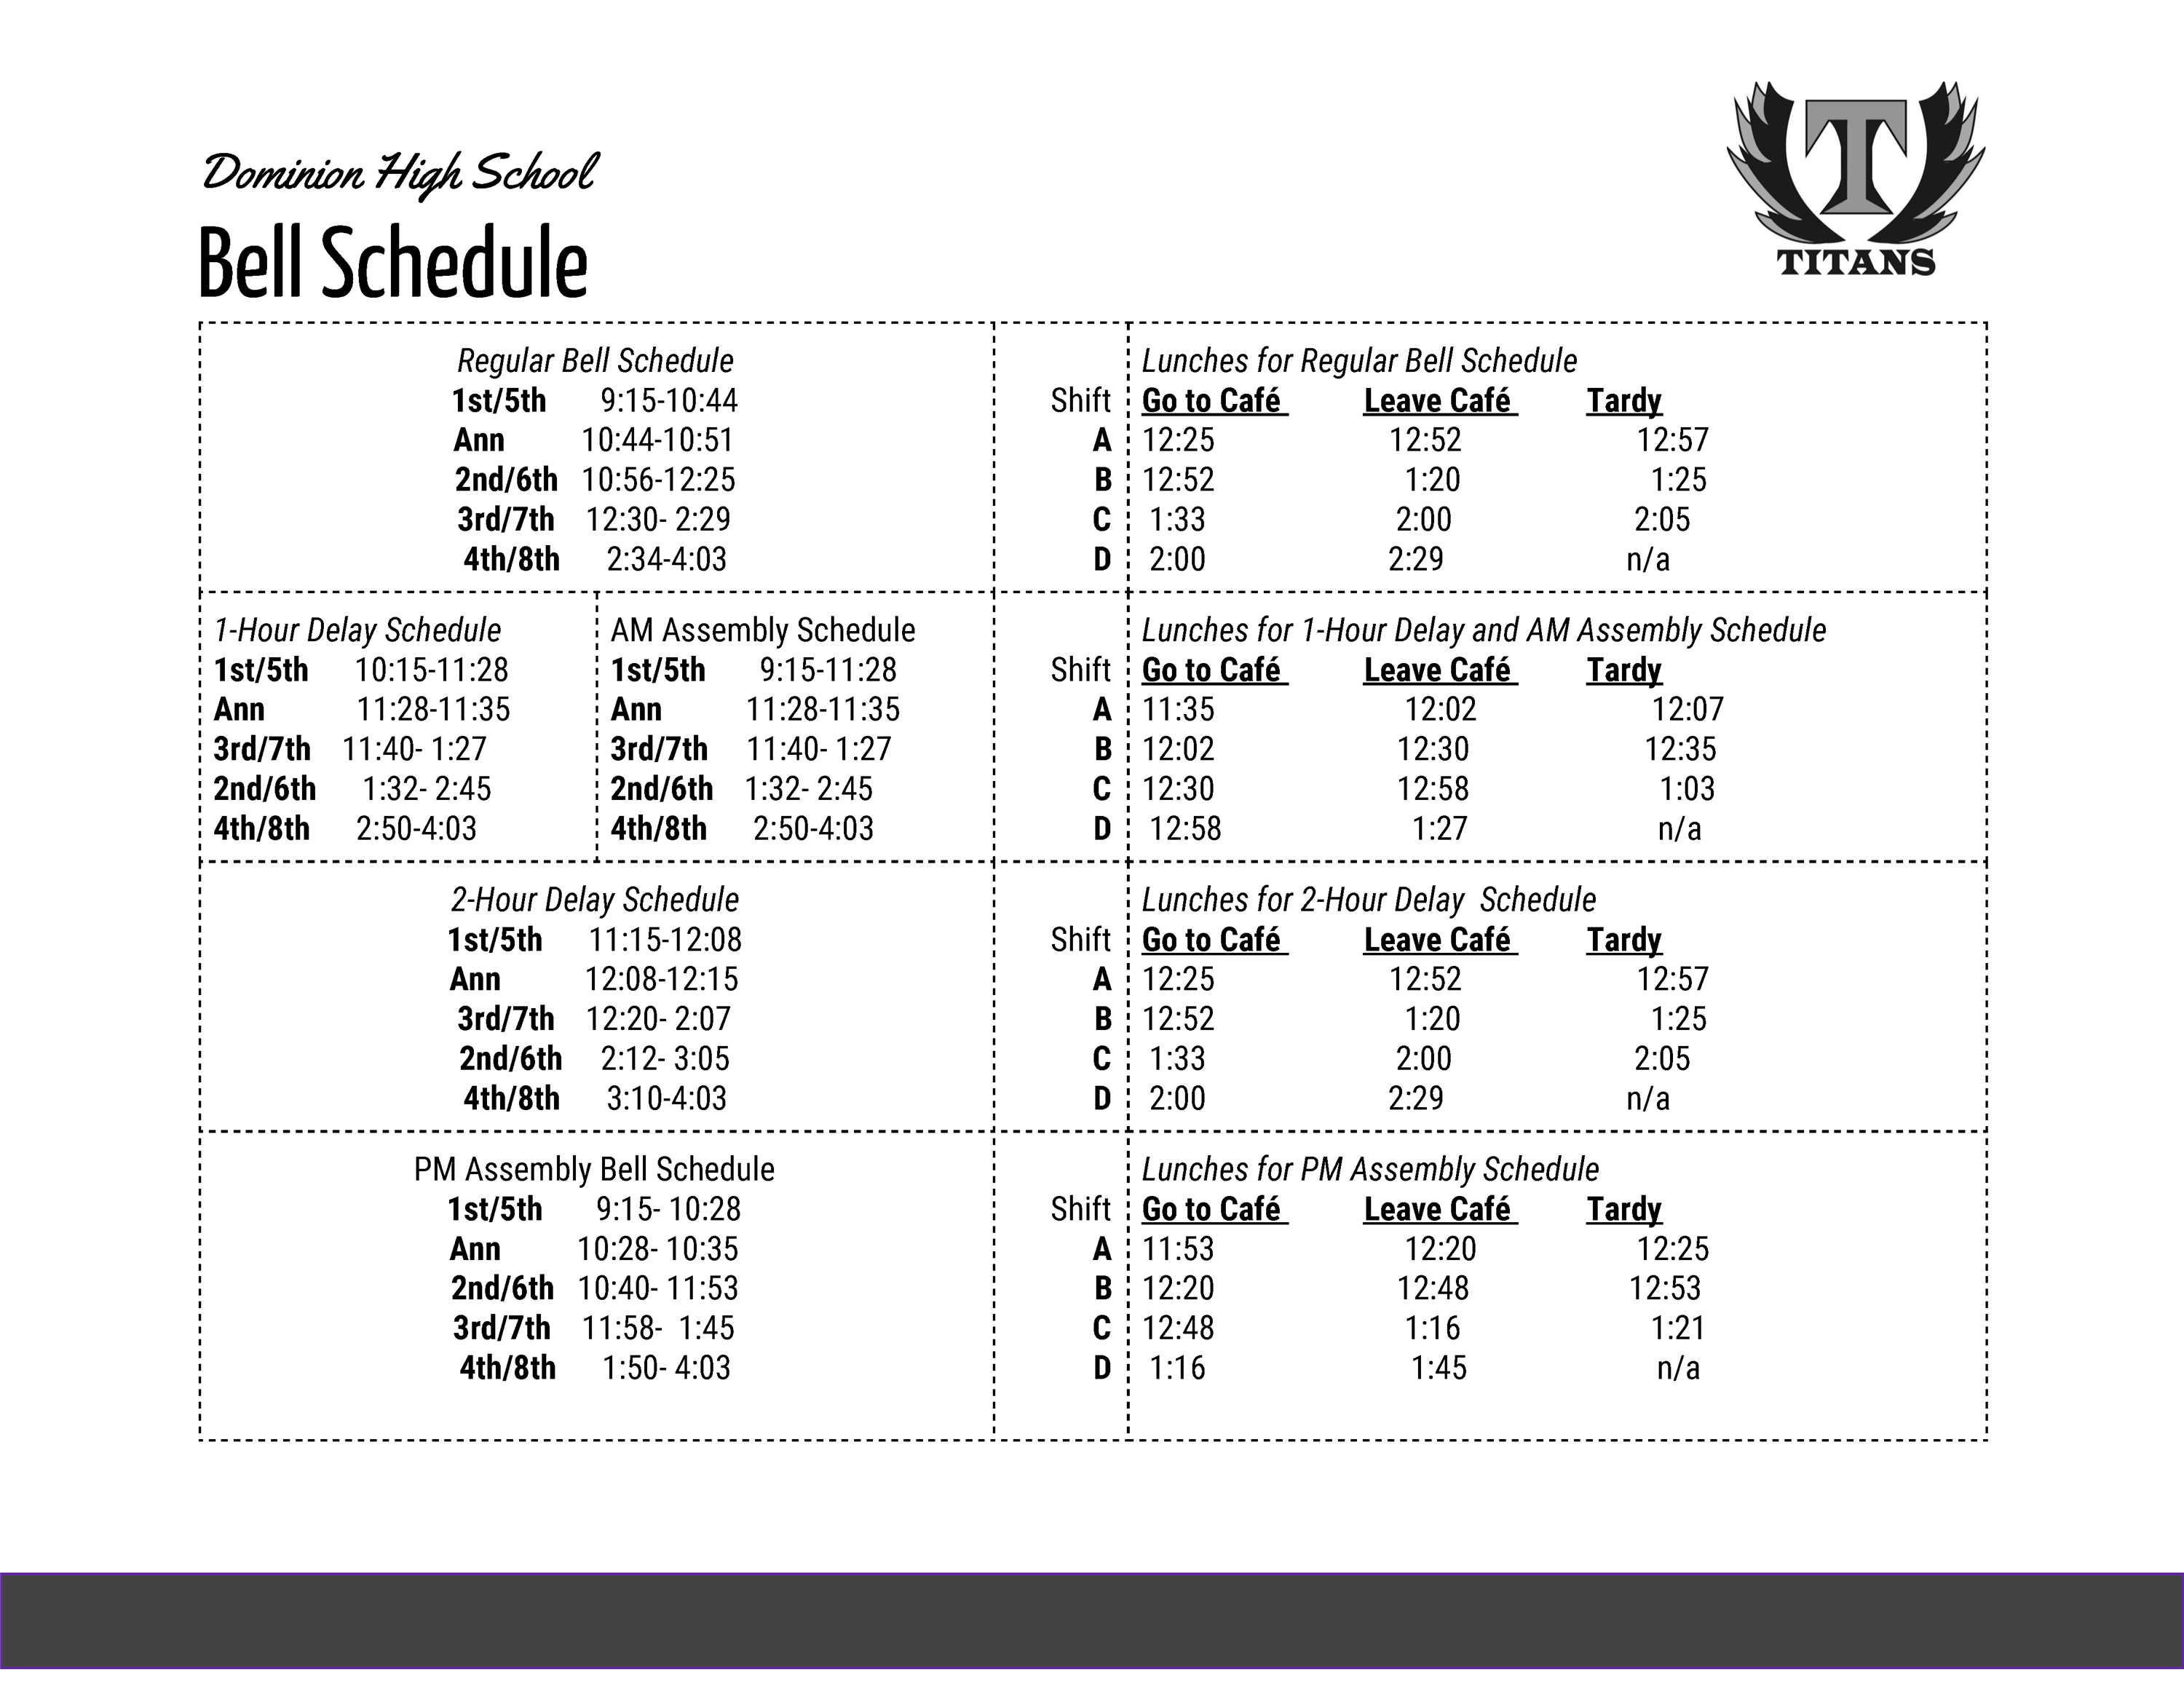 Dominion High School / Overview For Monroe Clark Middle School Calendar